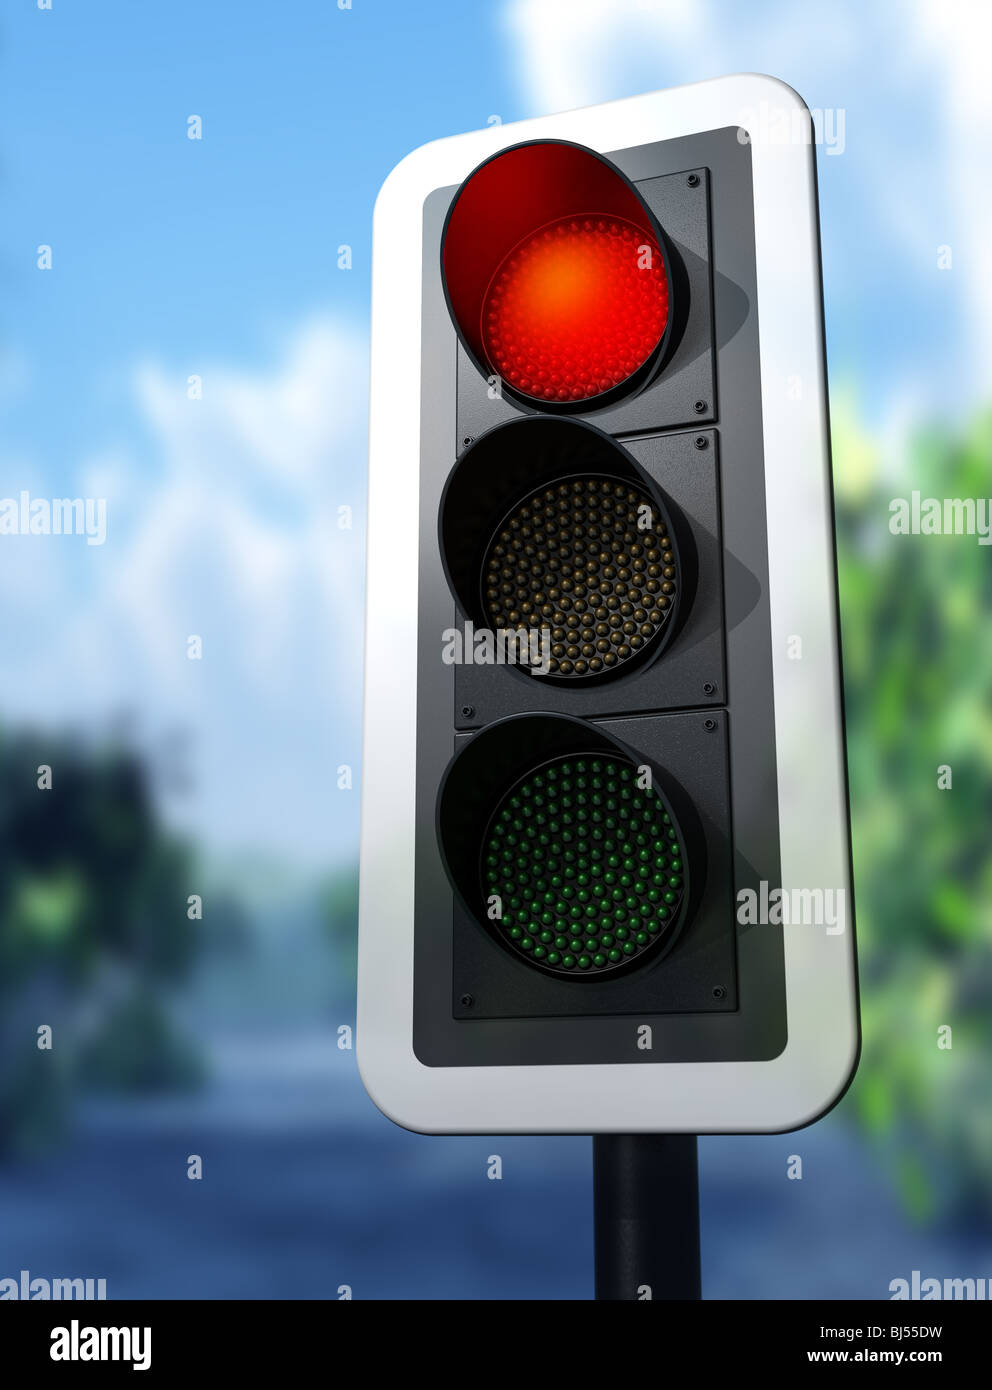 Illustration of a red traffic light on a country road - Stock Image